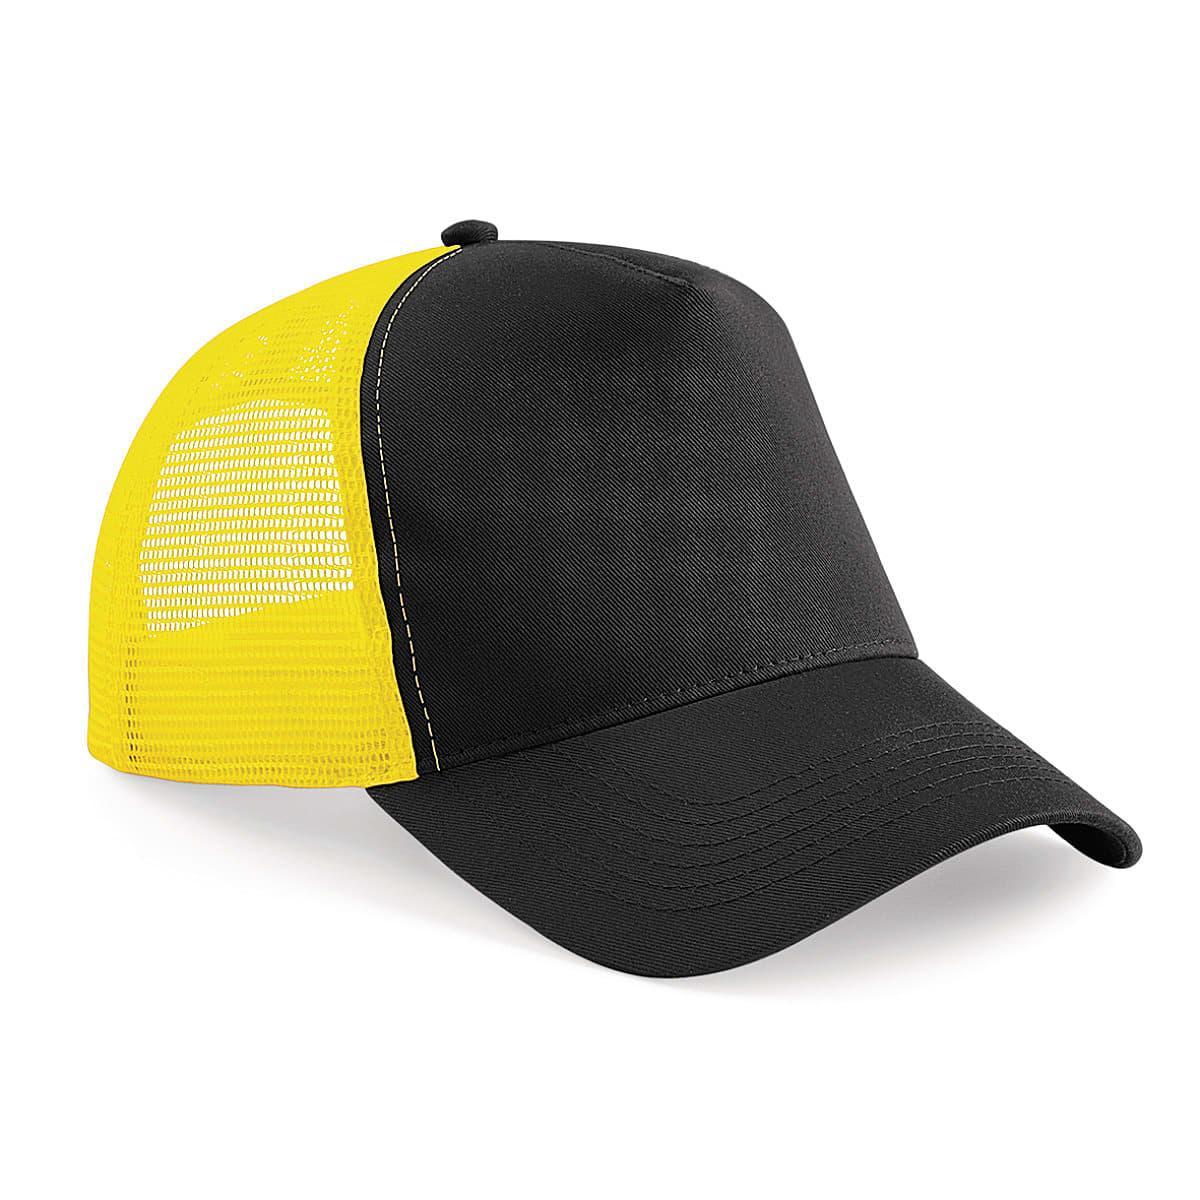 Beechfield Snapback Trucker Cap in Black / Yellow (Product Code: B640)